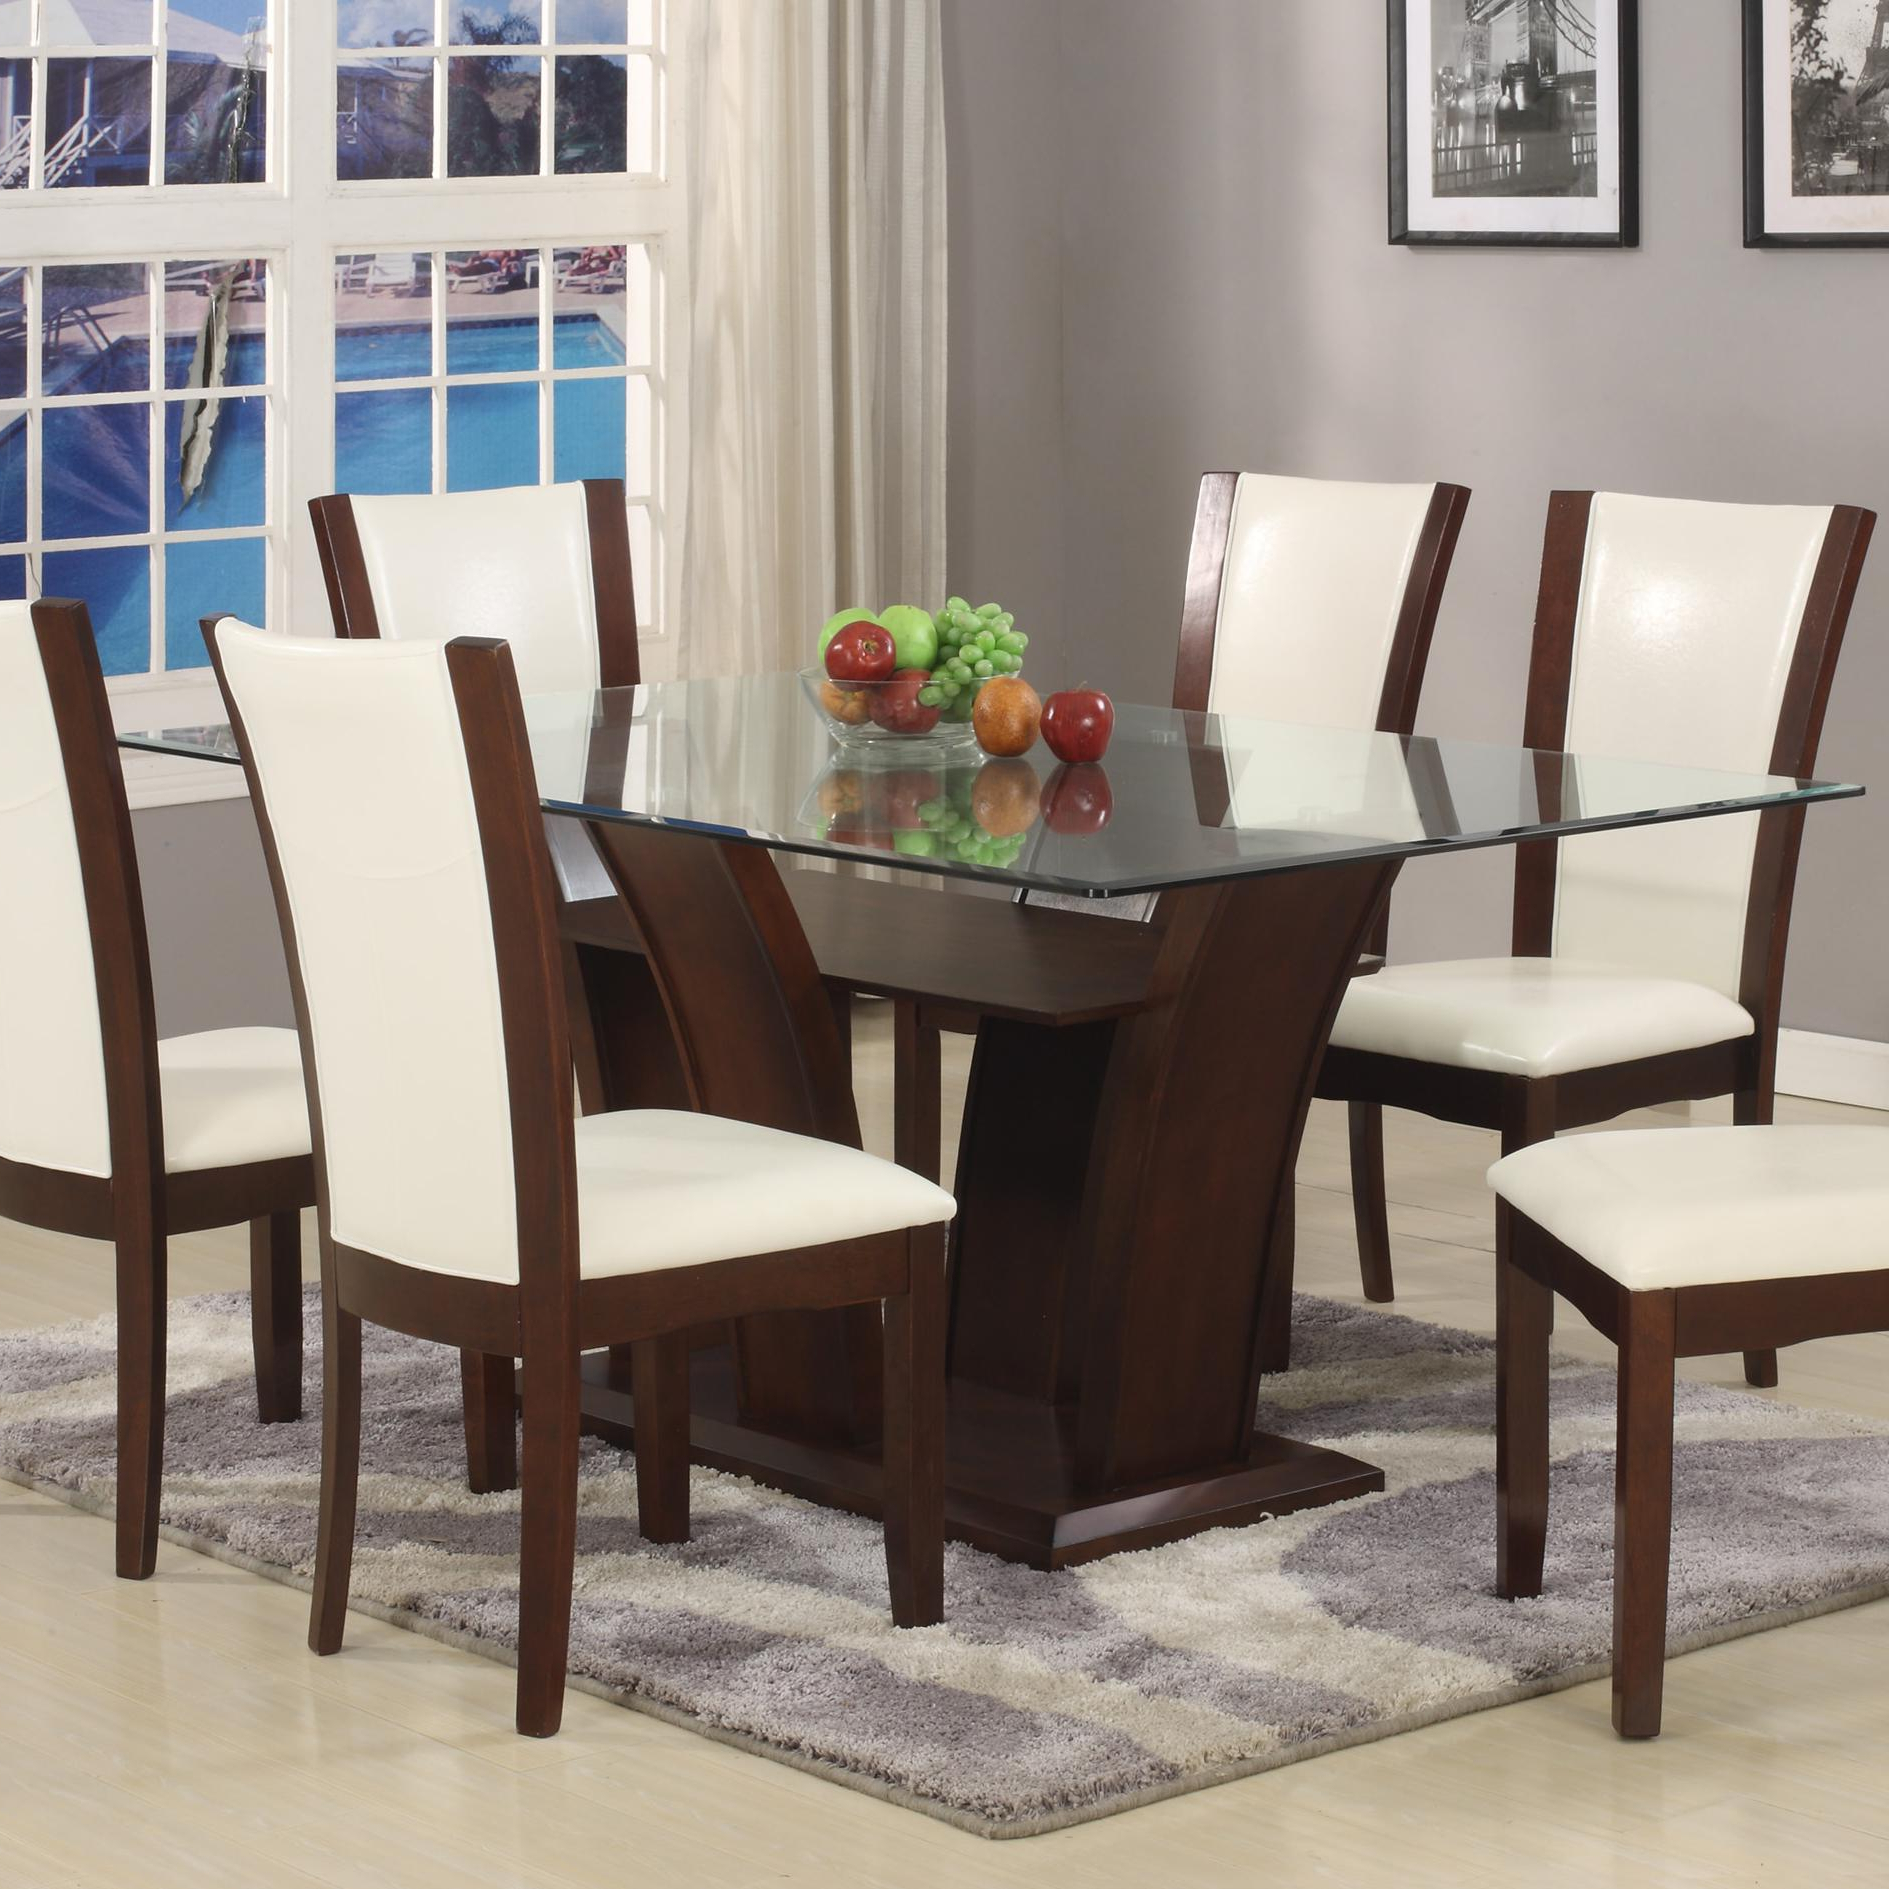 Trendy Rectangular Glass Top Dining Tables Pertaining To Camelia White Dining Table (View 3 of 30)